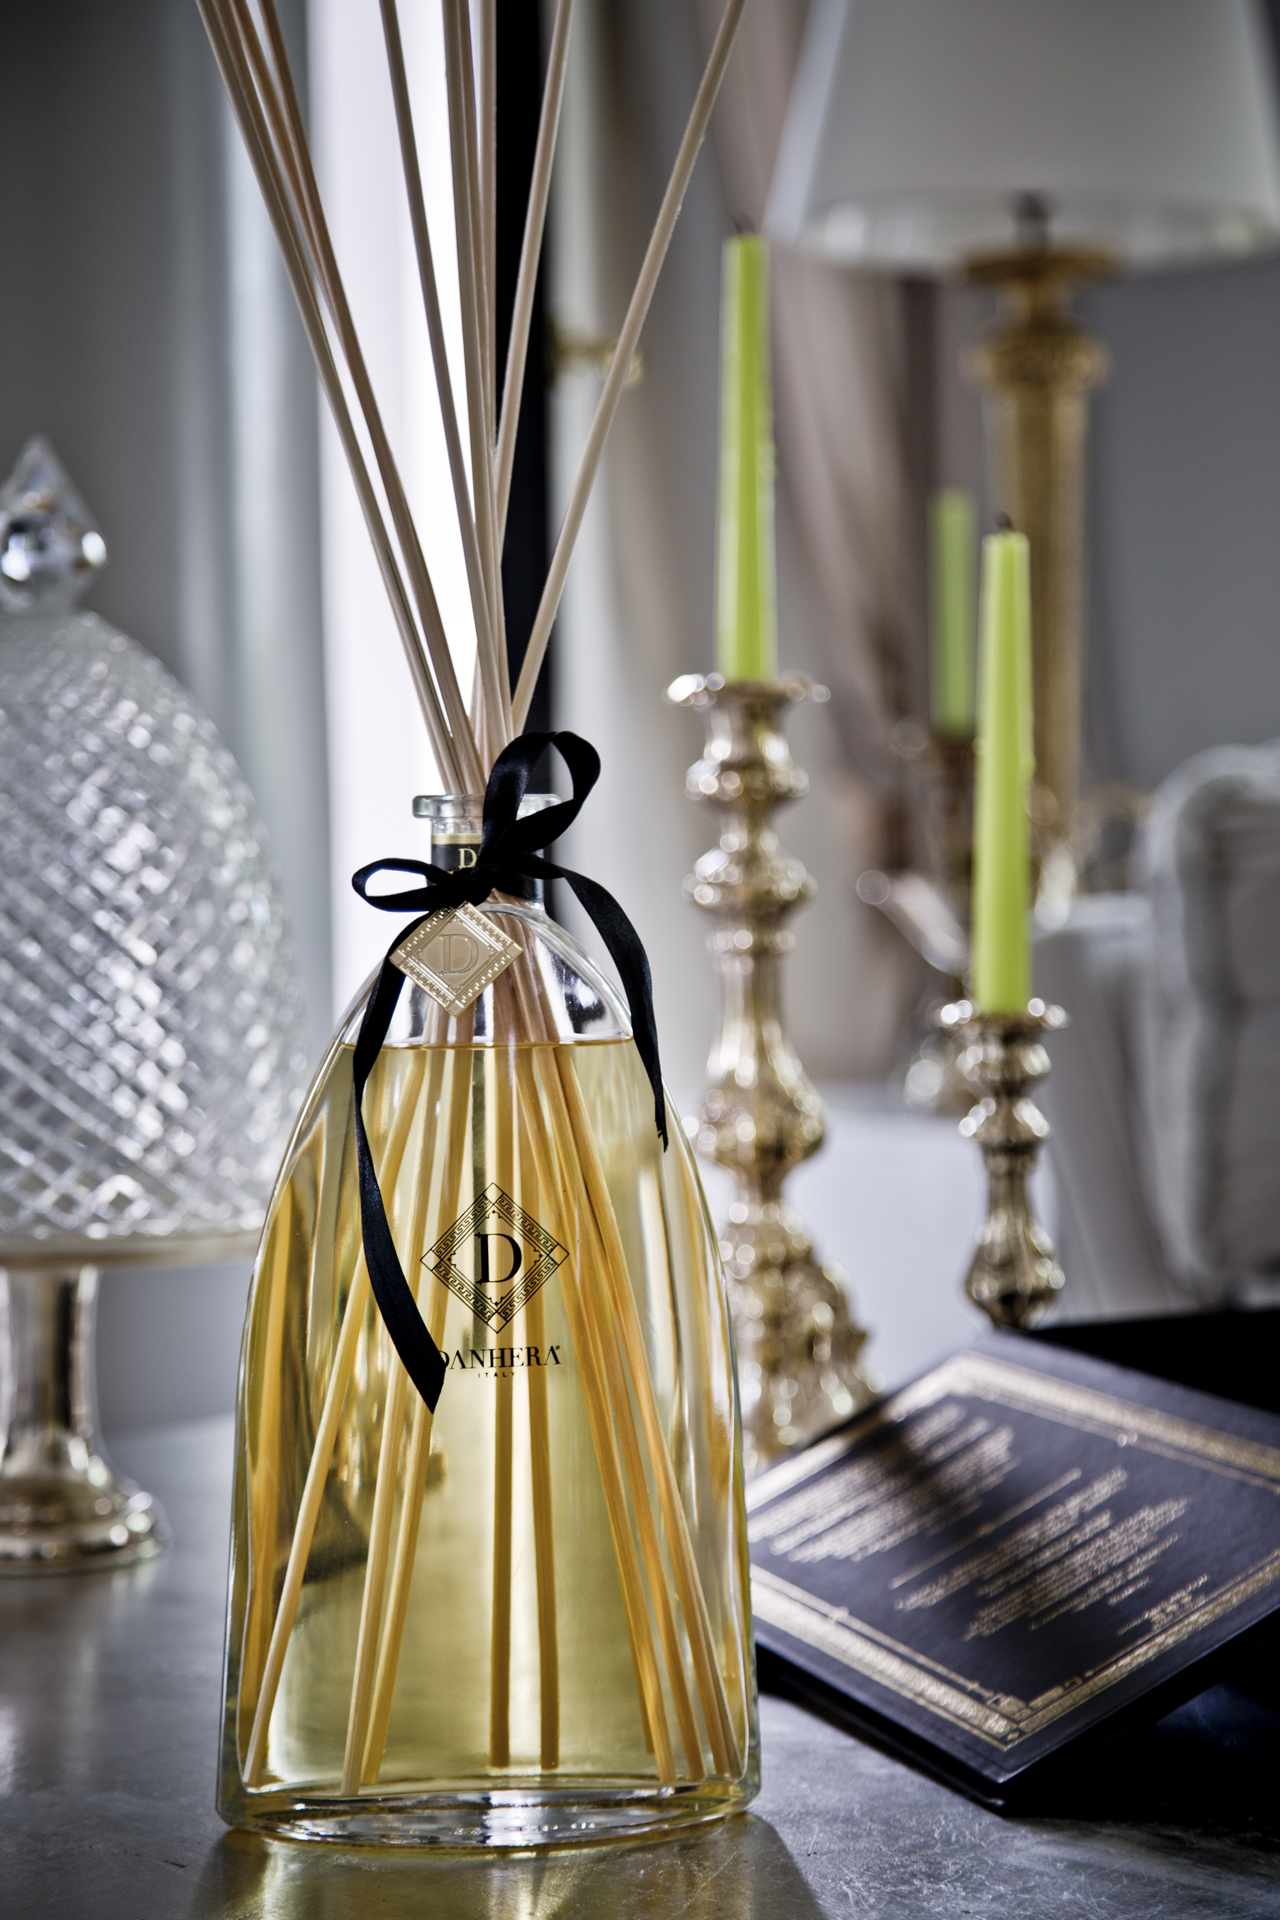 DANHERA Luxury Interior Fragrances